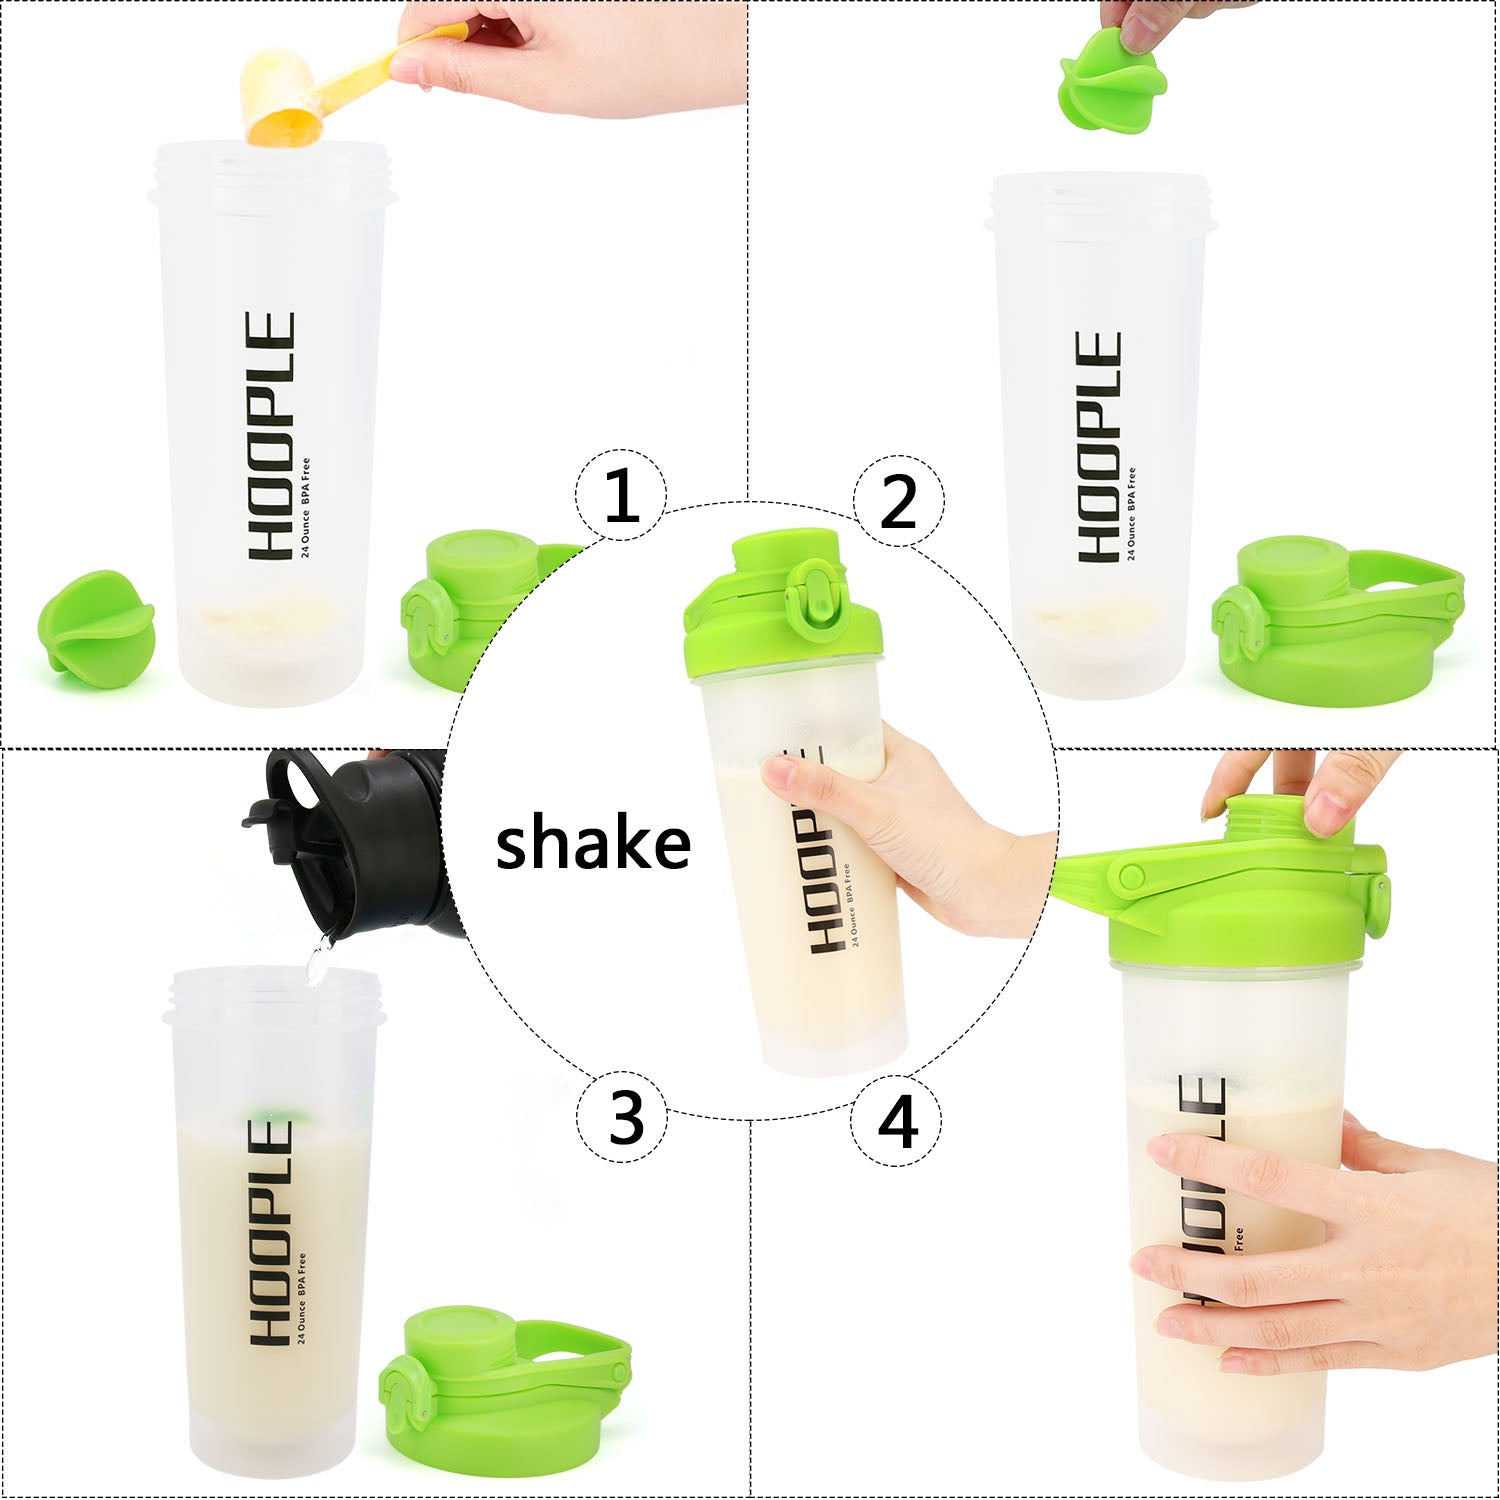 Hoople 24 OZ Shaker Bottle Protein Powder Shake Blender Gym Smoothie Cup, BPA Free, Auto-Flip Leak-Proof Lid, Handle with Ball Included - Green